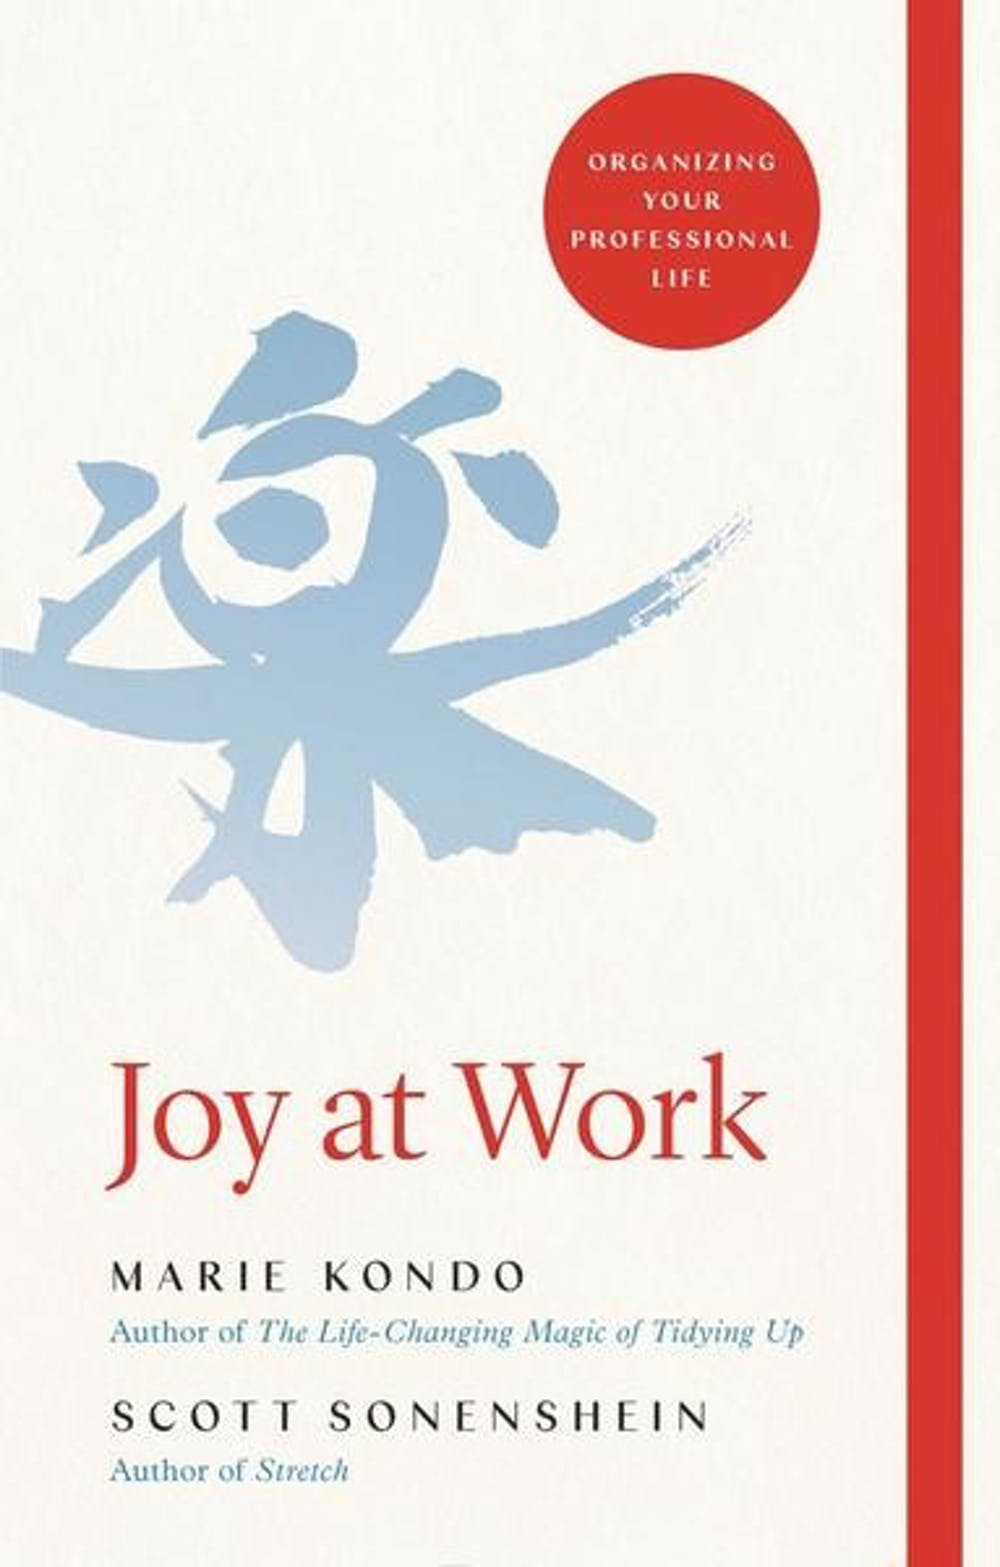 joy-at-work-courtesy-pan-macmillan